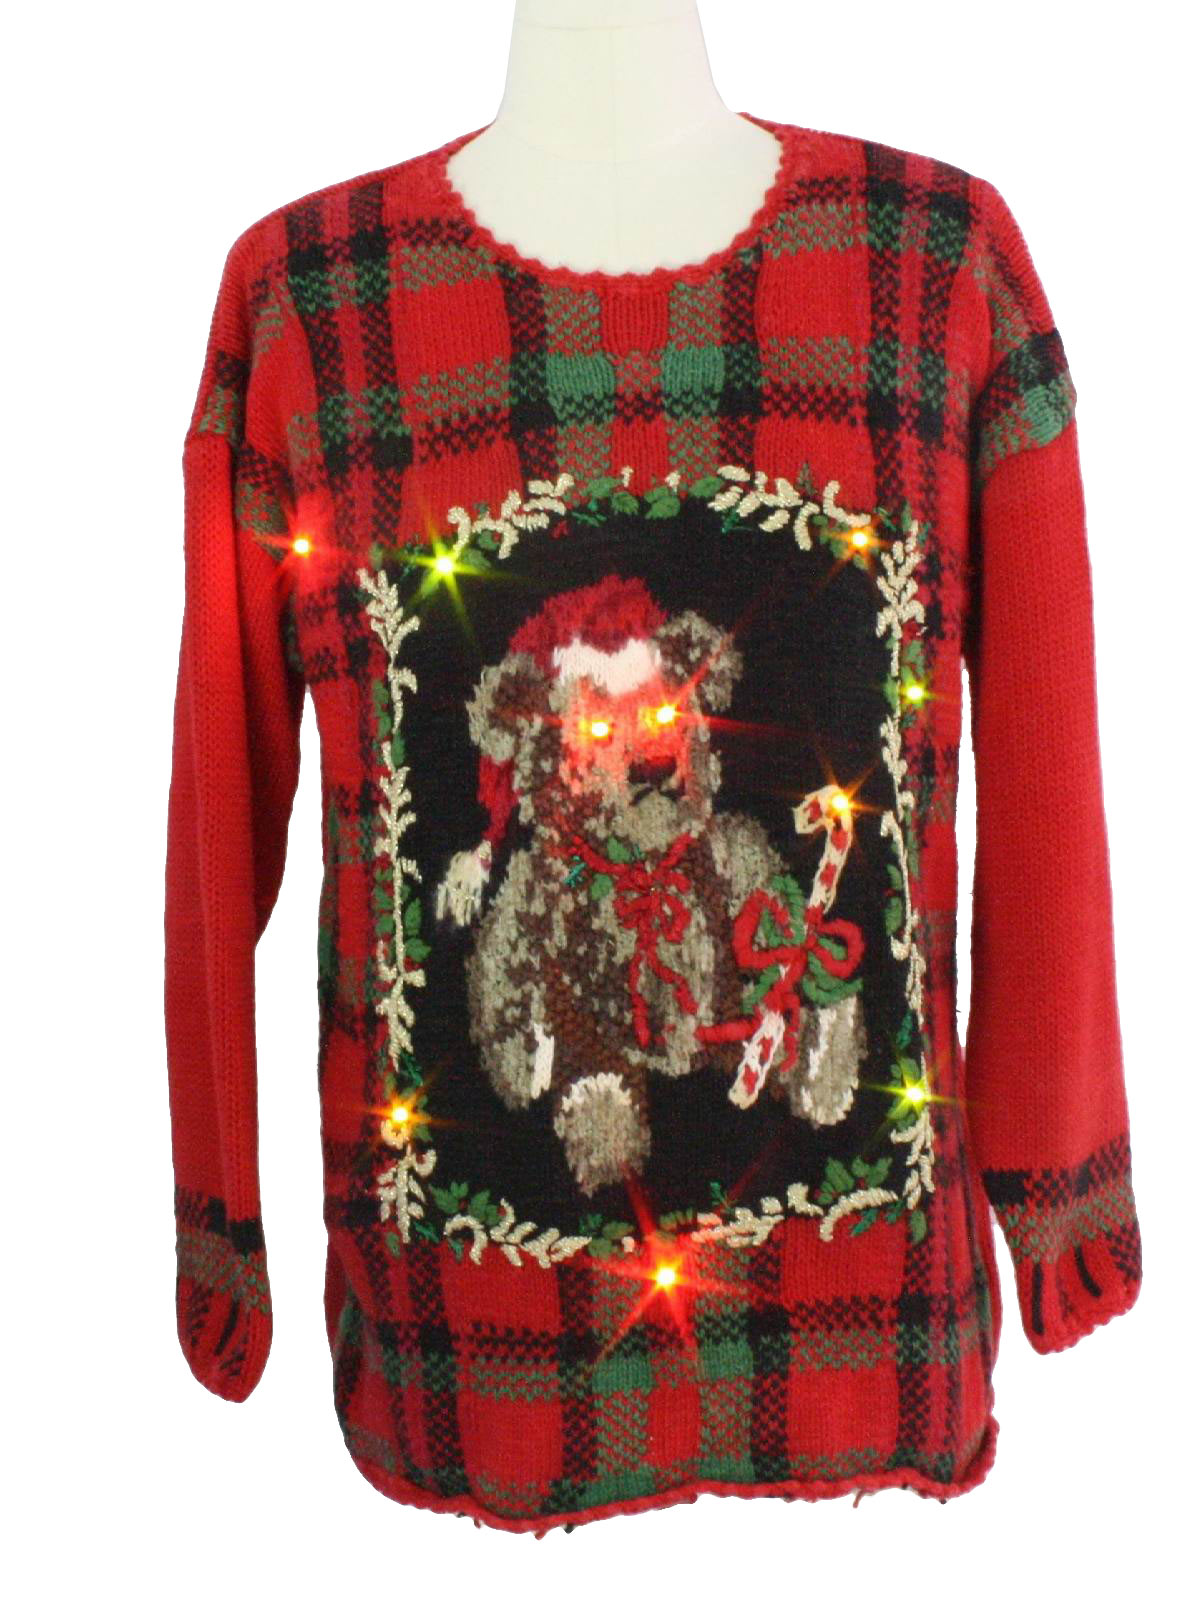 They are so cheap, that you can't even go to your favorite second-hand store and buy a sweater for this price anymore! And while these ugly holiday sweaters are cheap--the designs are rich! We love the look of the 8-bit video game graphic tee and so we've created a line of .